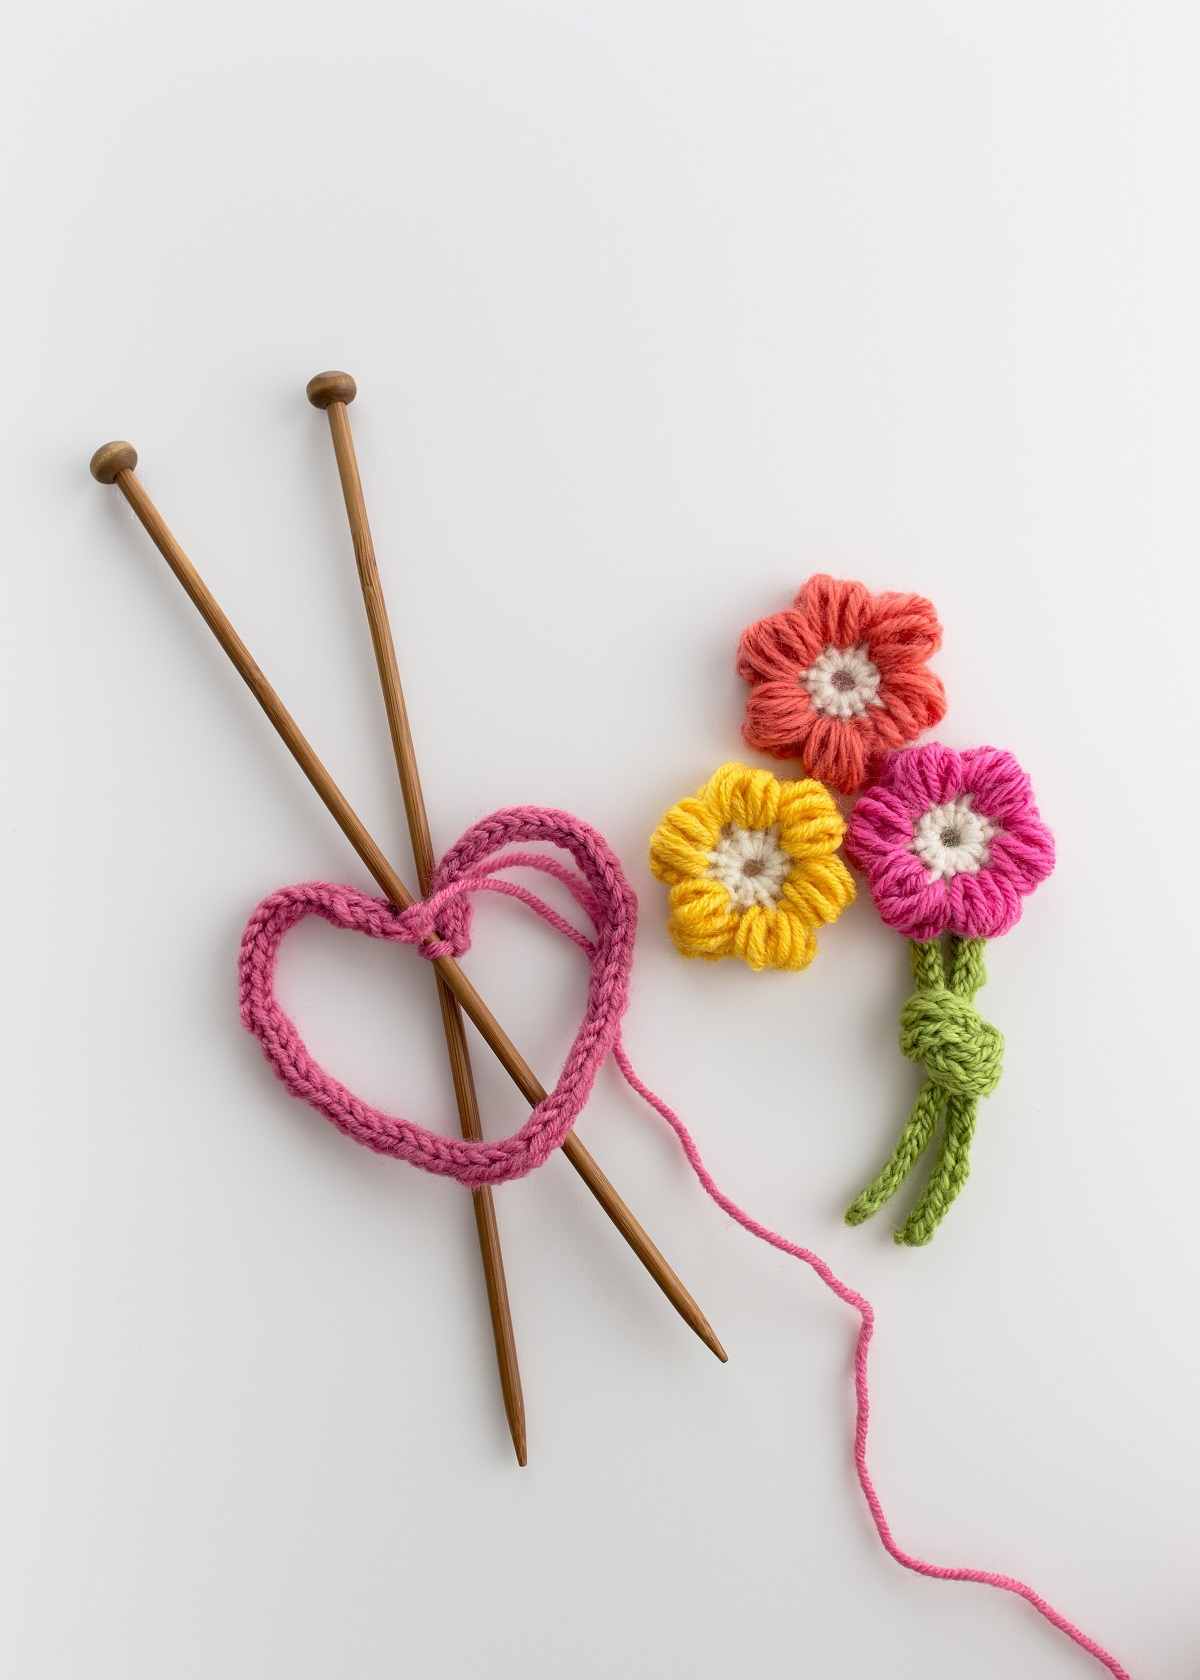 Crocheted Masterpieces